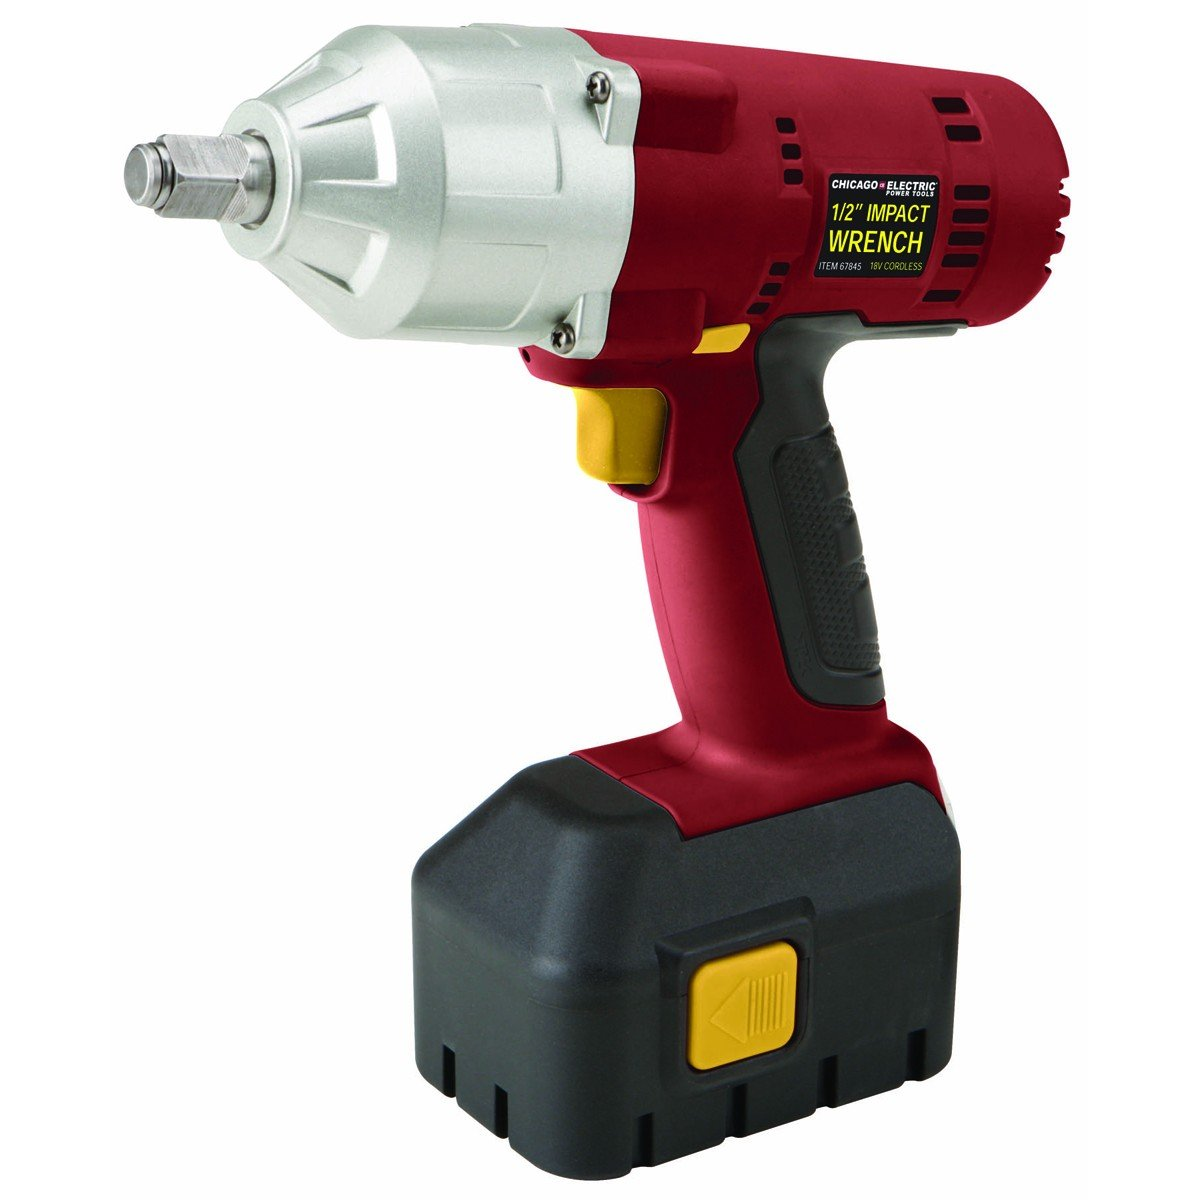 electric impact wrench. amazon.com: 1/2 inch 18 volt cordless impact wrench with built-in led light and variable speed; comes nicd battery one hour quick charger electric